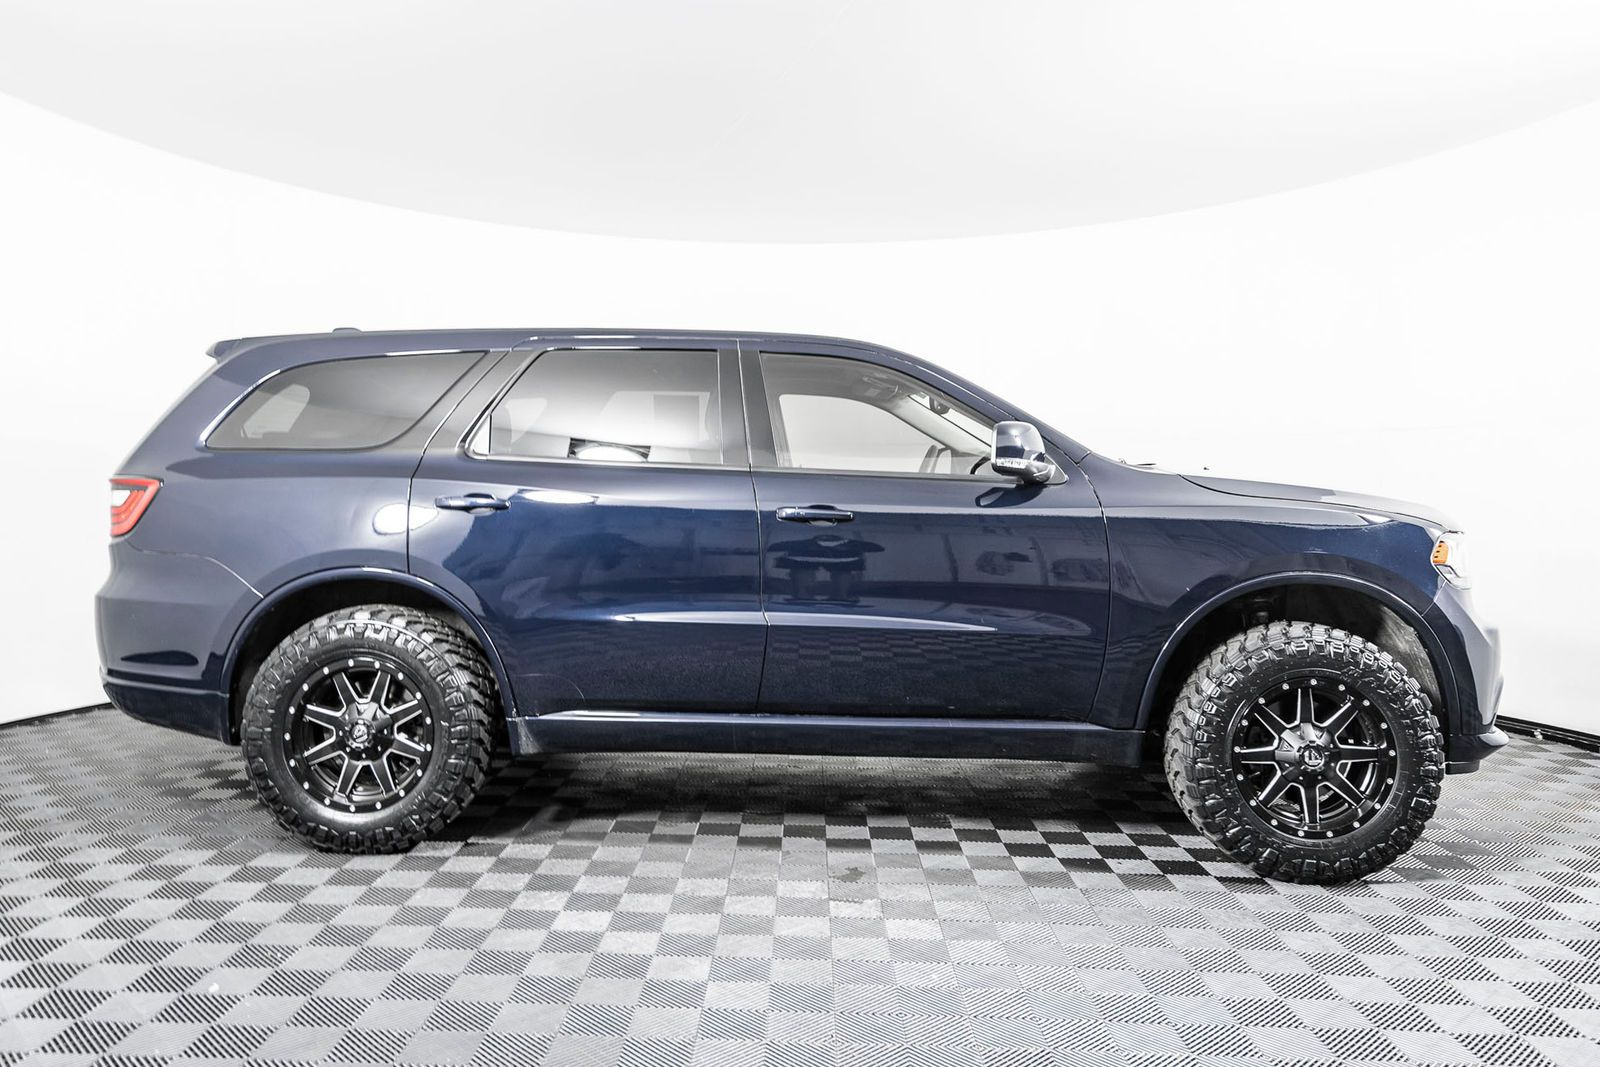 Used Lifted 2018 Dodge Durango Gt Awd Suv For Sale Northwest Motorsport Dodge Durango Dodge 2018 Dodge